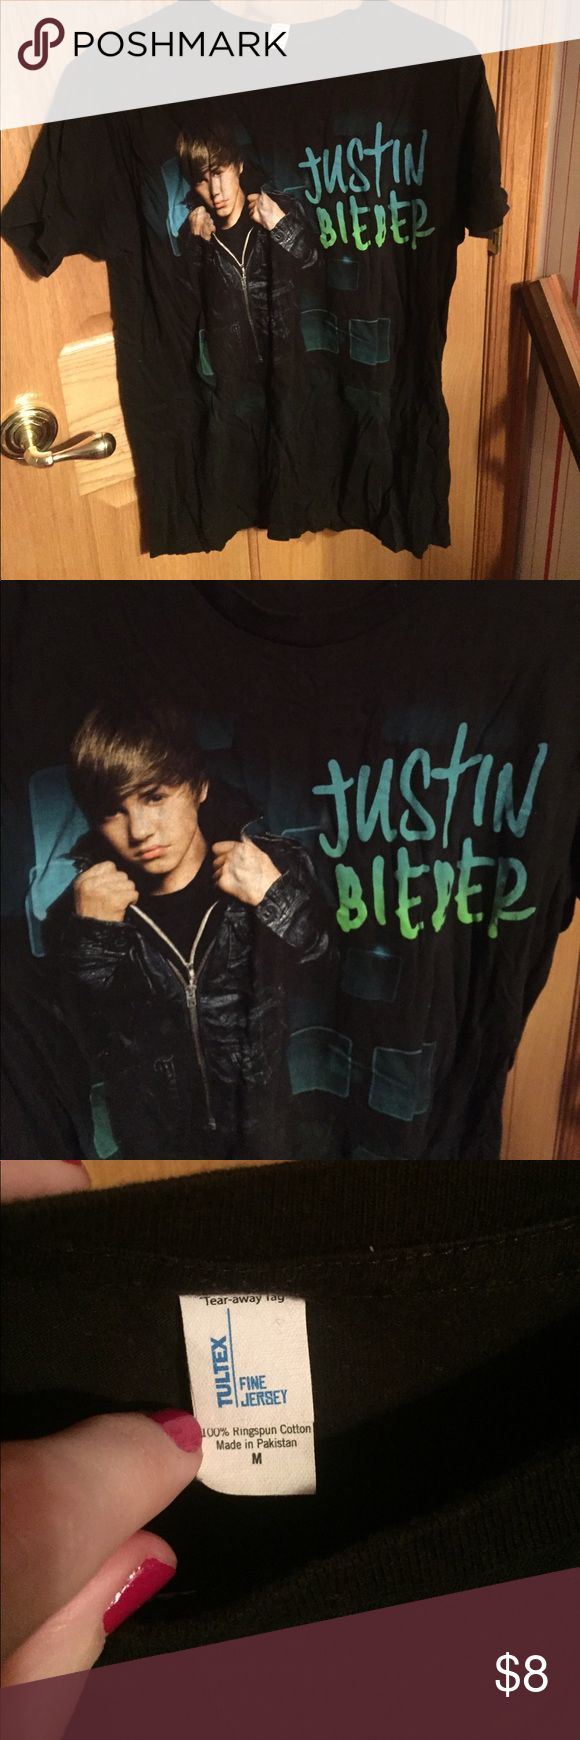 Justin Bieber tee Got at a Justin Bieber concert awhile ago. Only worn twice. Size medium Tops Tees - Short Sleeve